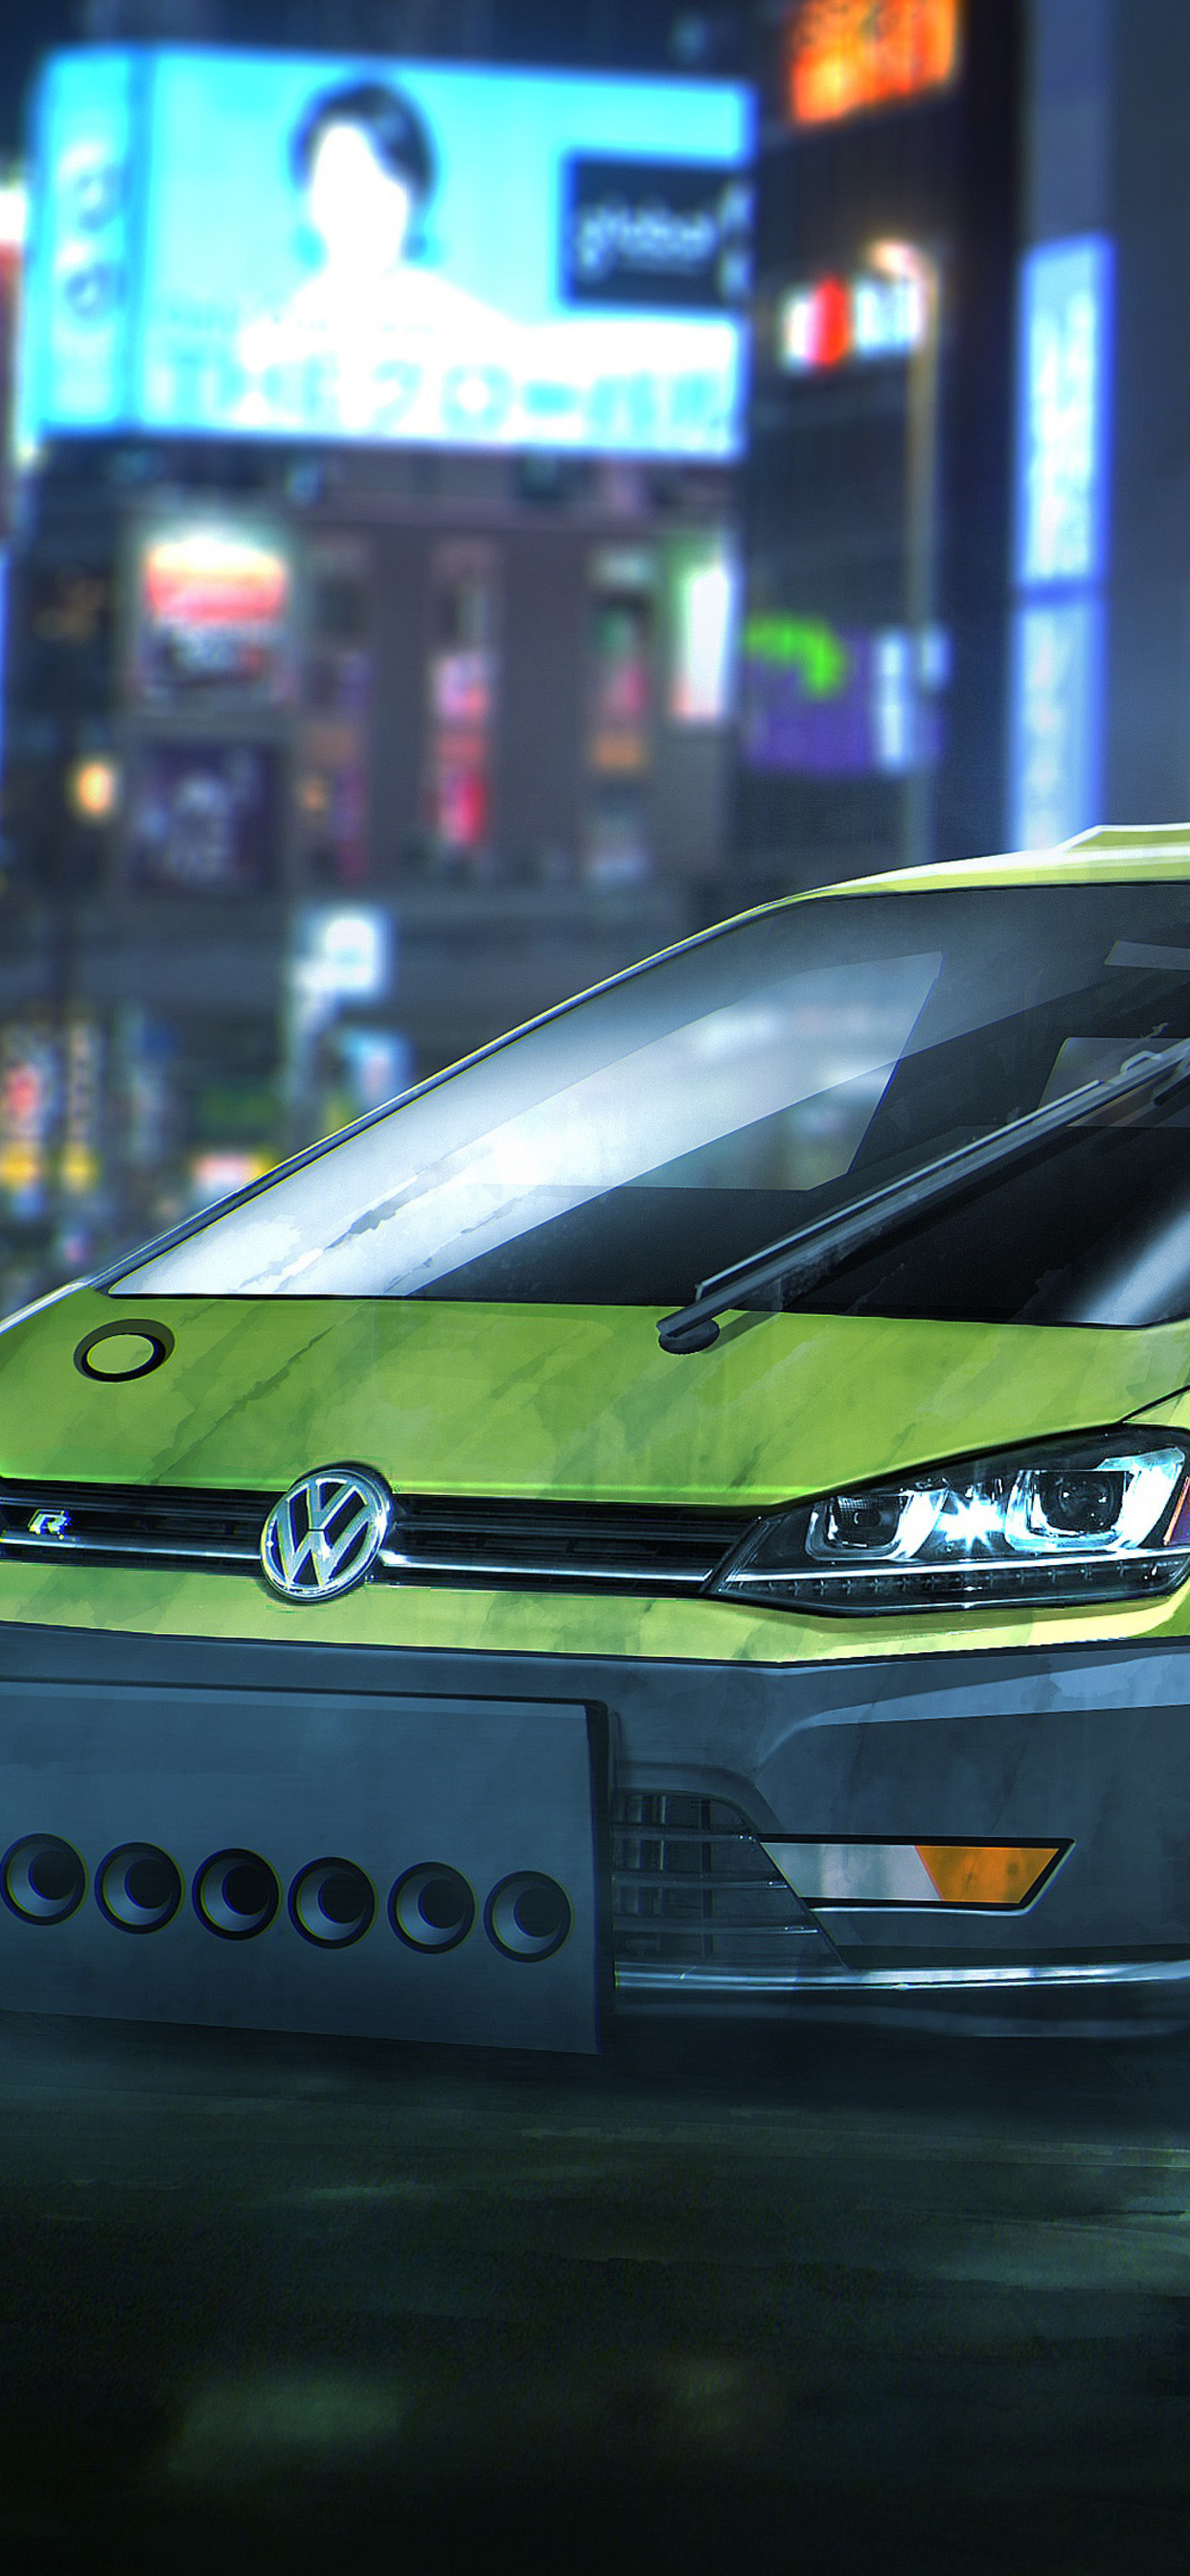 1242x2688 Blade Runner Volkswagen Golf Hatchback Iphone Xs Max Hd 4k Wallpapers Images Backgrounds Photos And Pictures